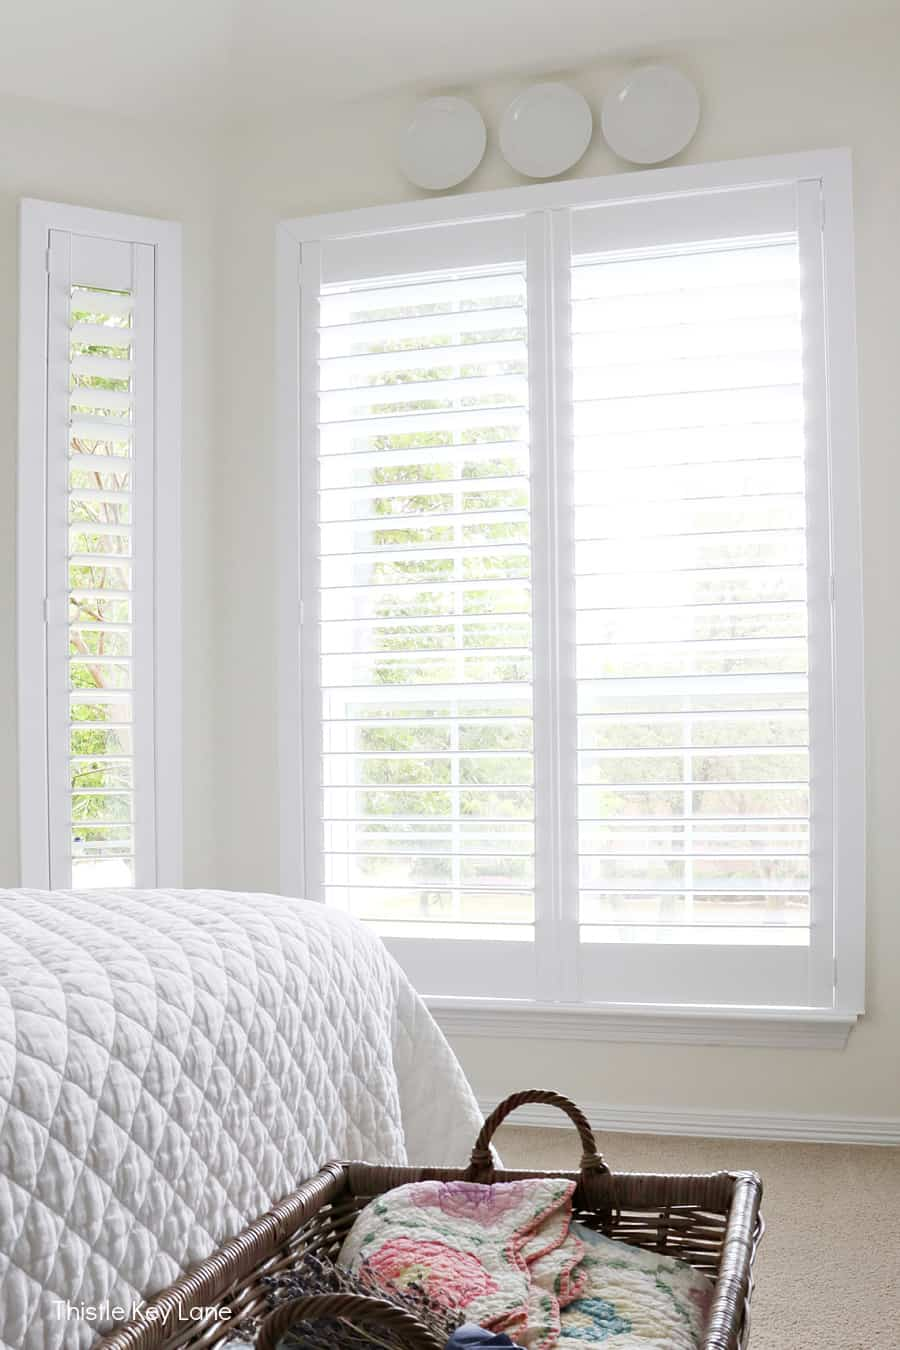 Large bedroom windows with shutters.